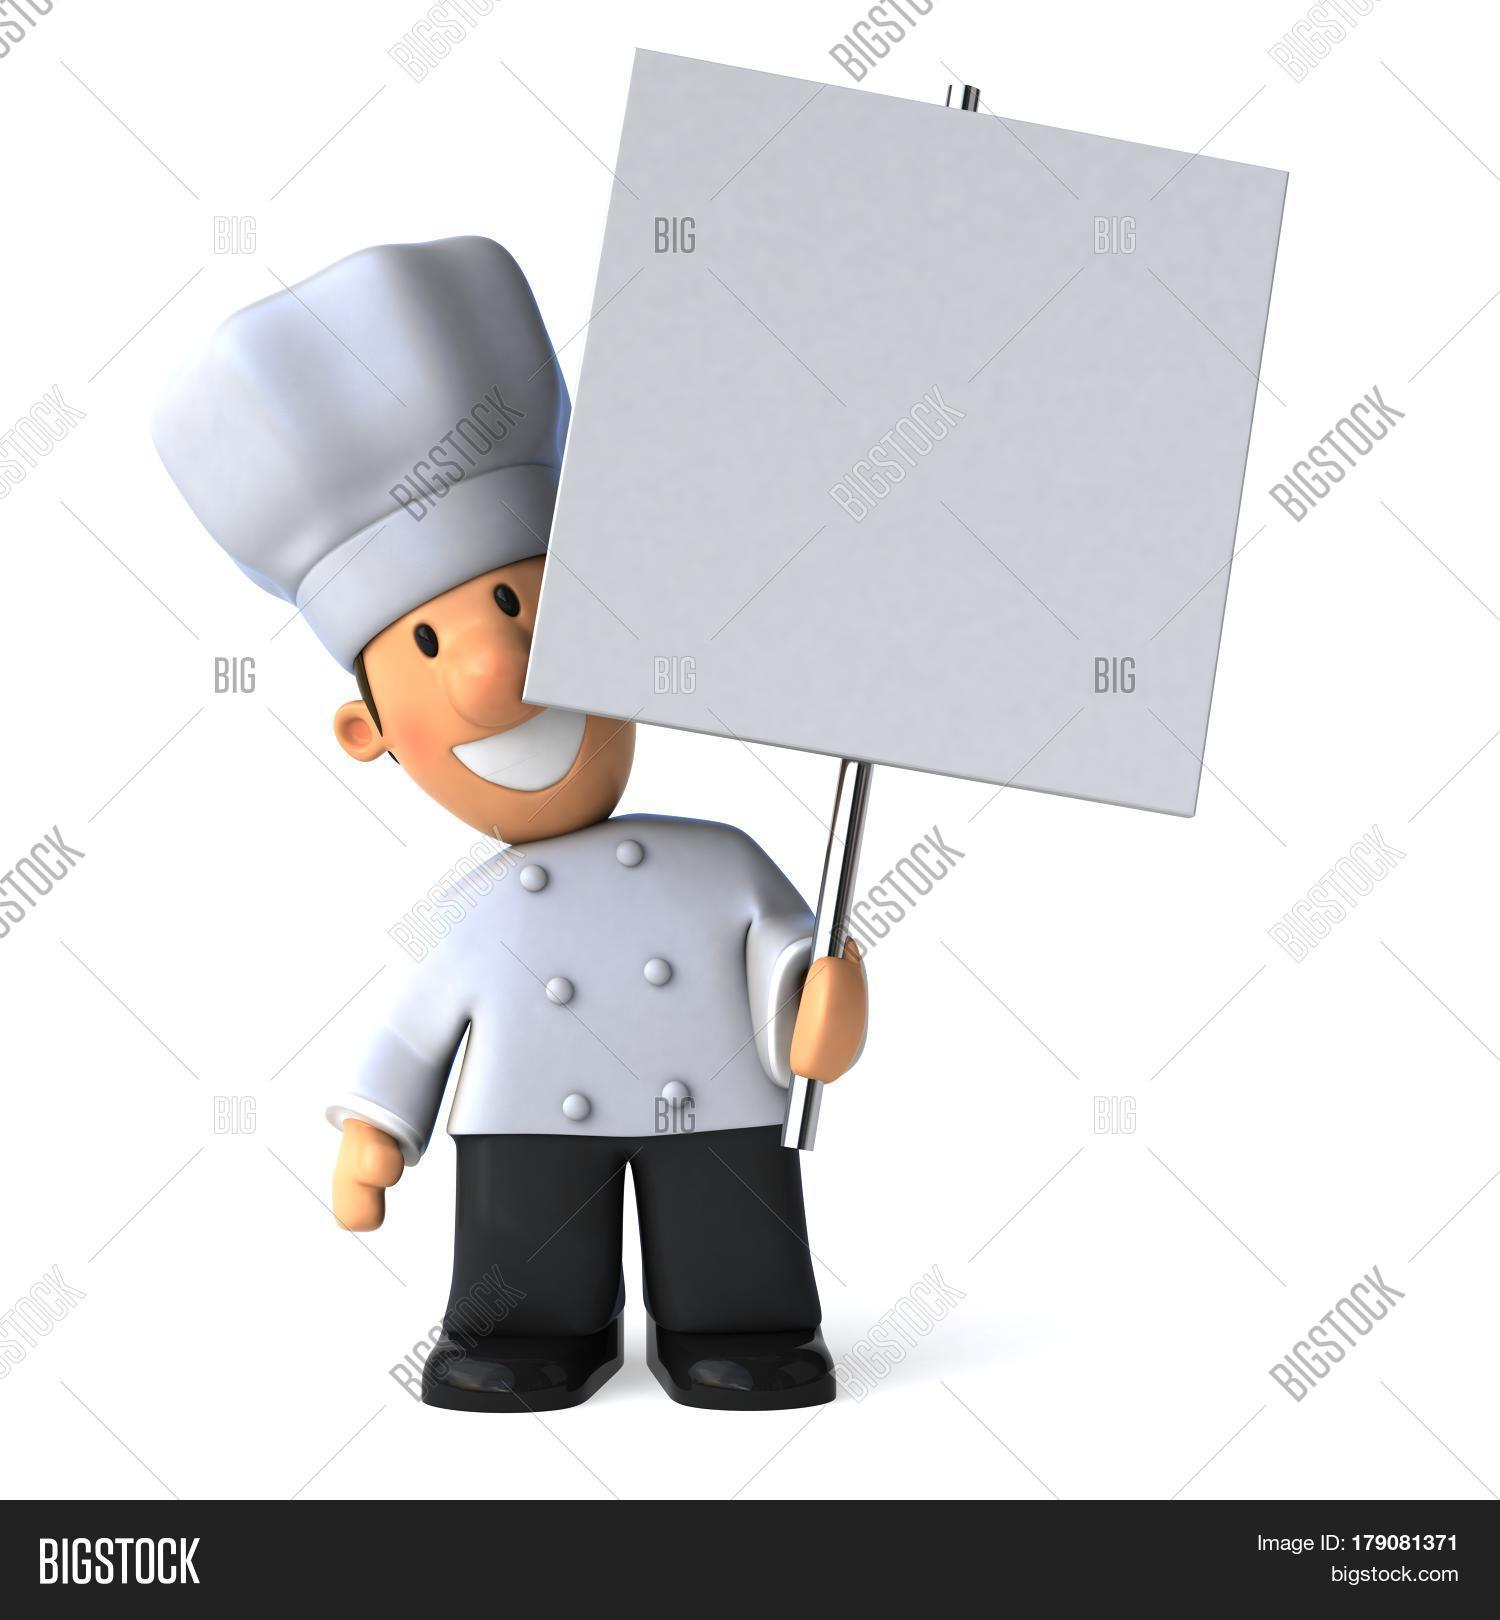 3d,appetite,appetizer,chef,cook,cooking,cuisine,culinary,diet,dish,eat,entree,food,french,gourmet,hat,illustration,isolated,italian,job,kitchen,menu,person,profession,professional,recipe,restaurant,uniform,white